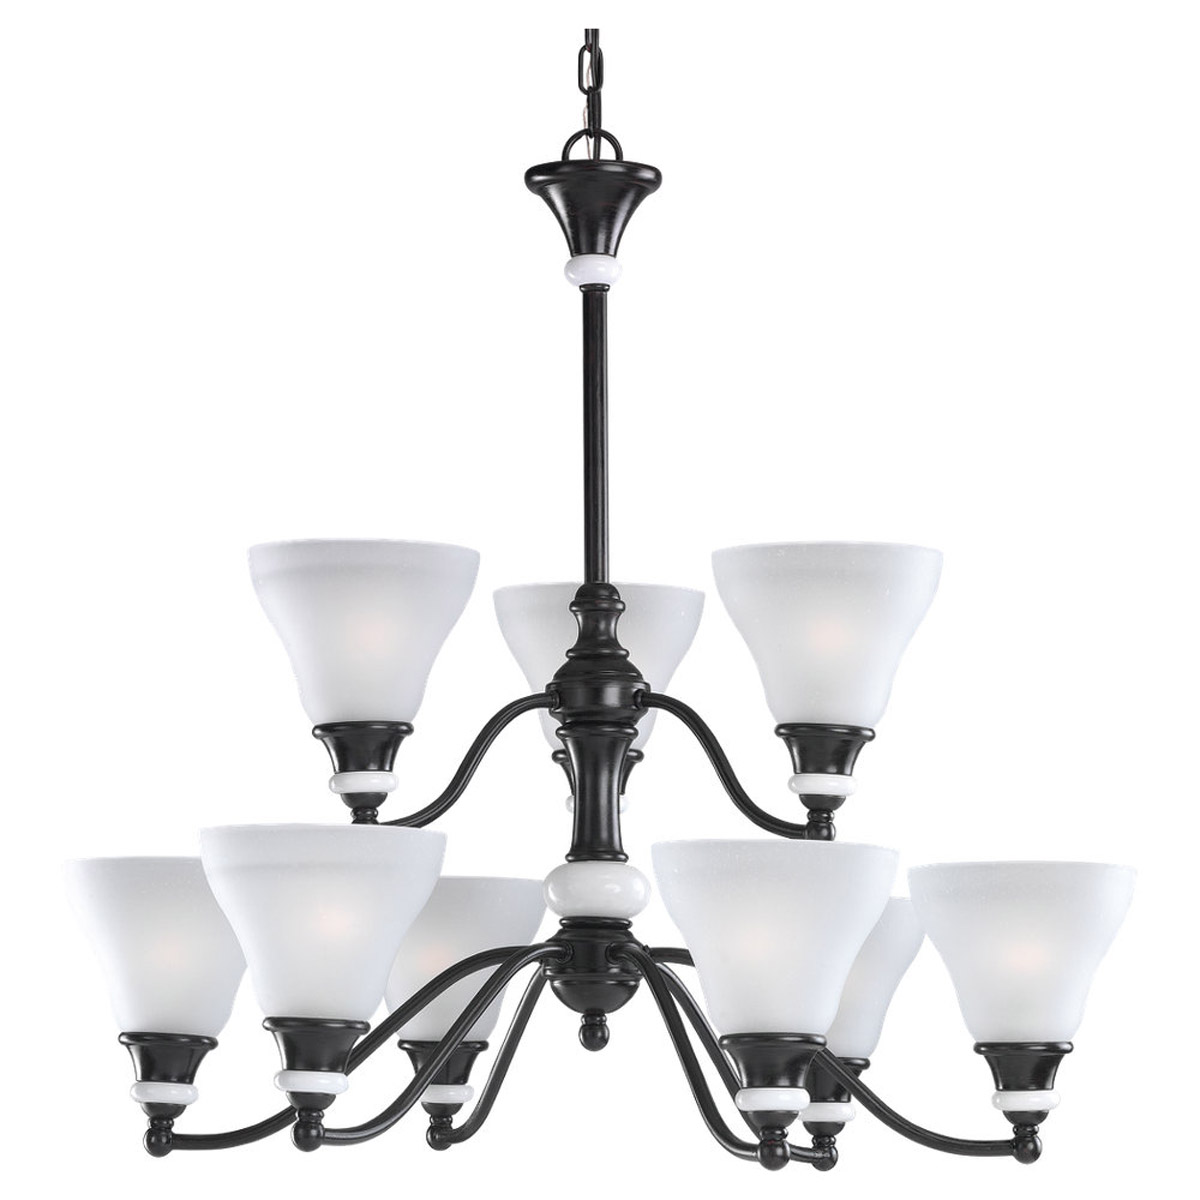 Sea Gull Lighting Brixham 9 Light Chandelier in Rustic Bronze with Ceramic Style Inlay 31593-855 photo